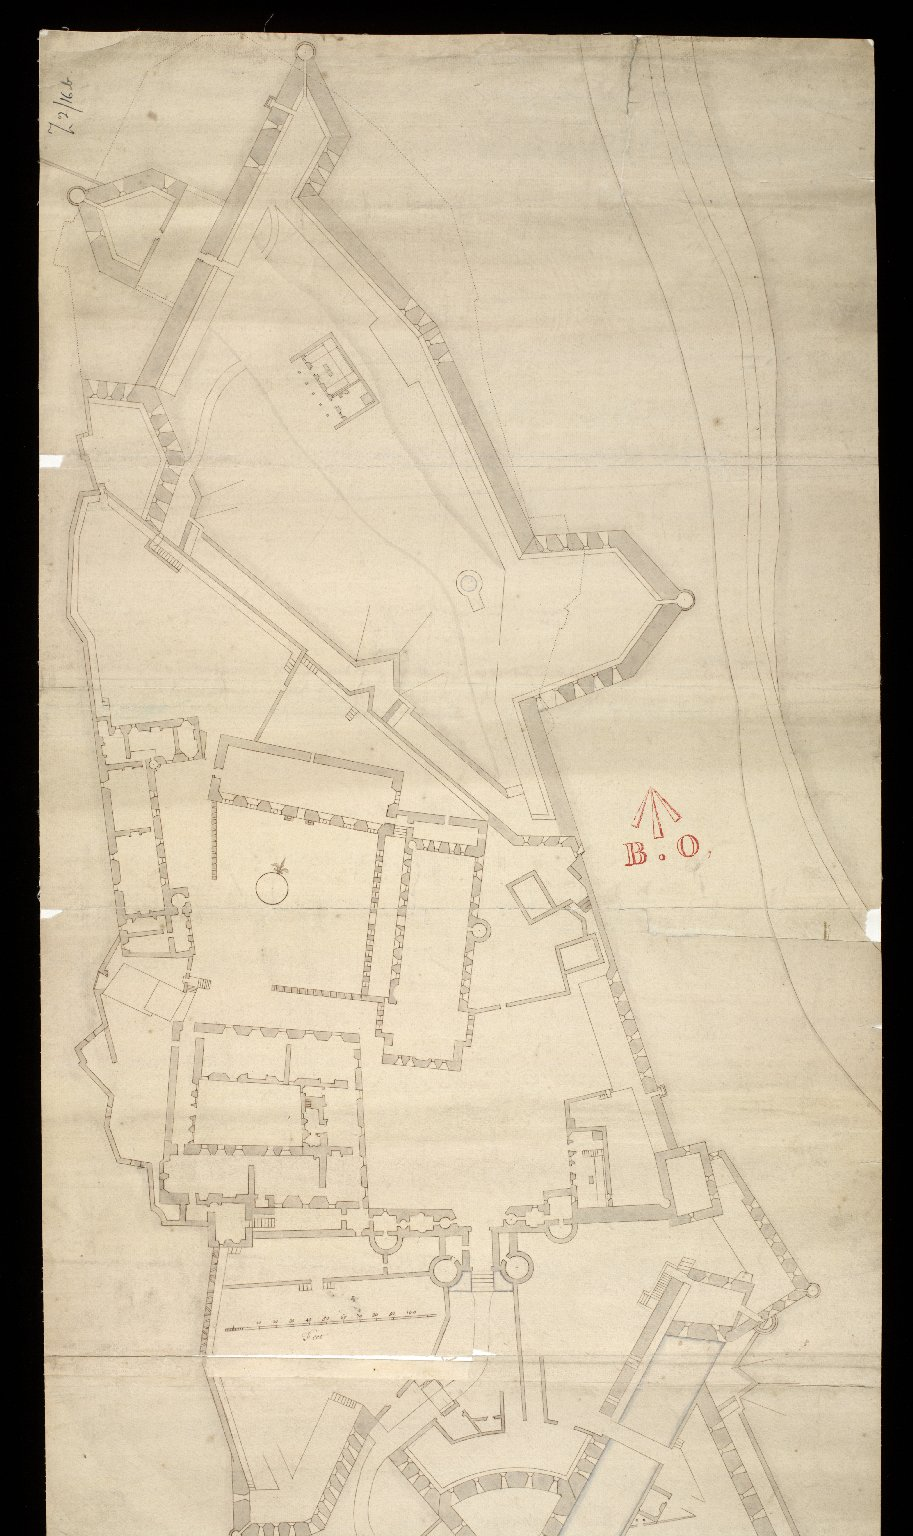 [Stirling Castle, with plans to fortify the main entrance and the nether bailey] [1 of 2]